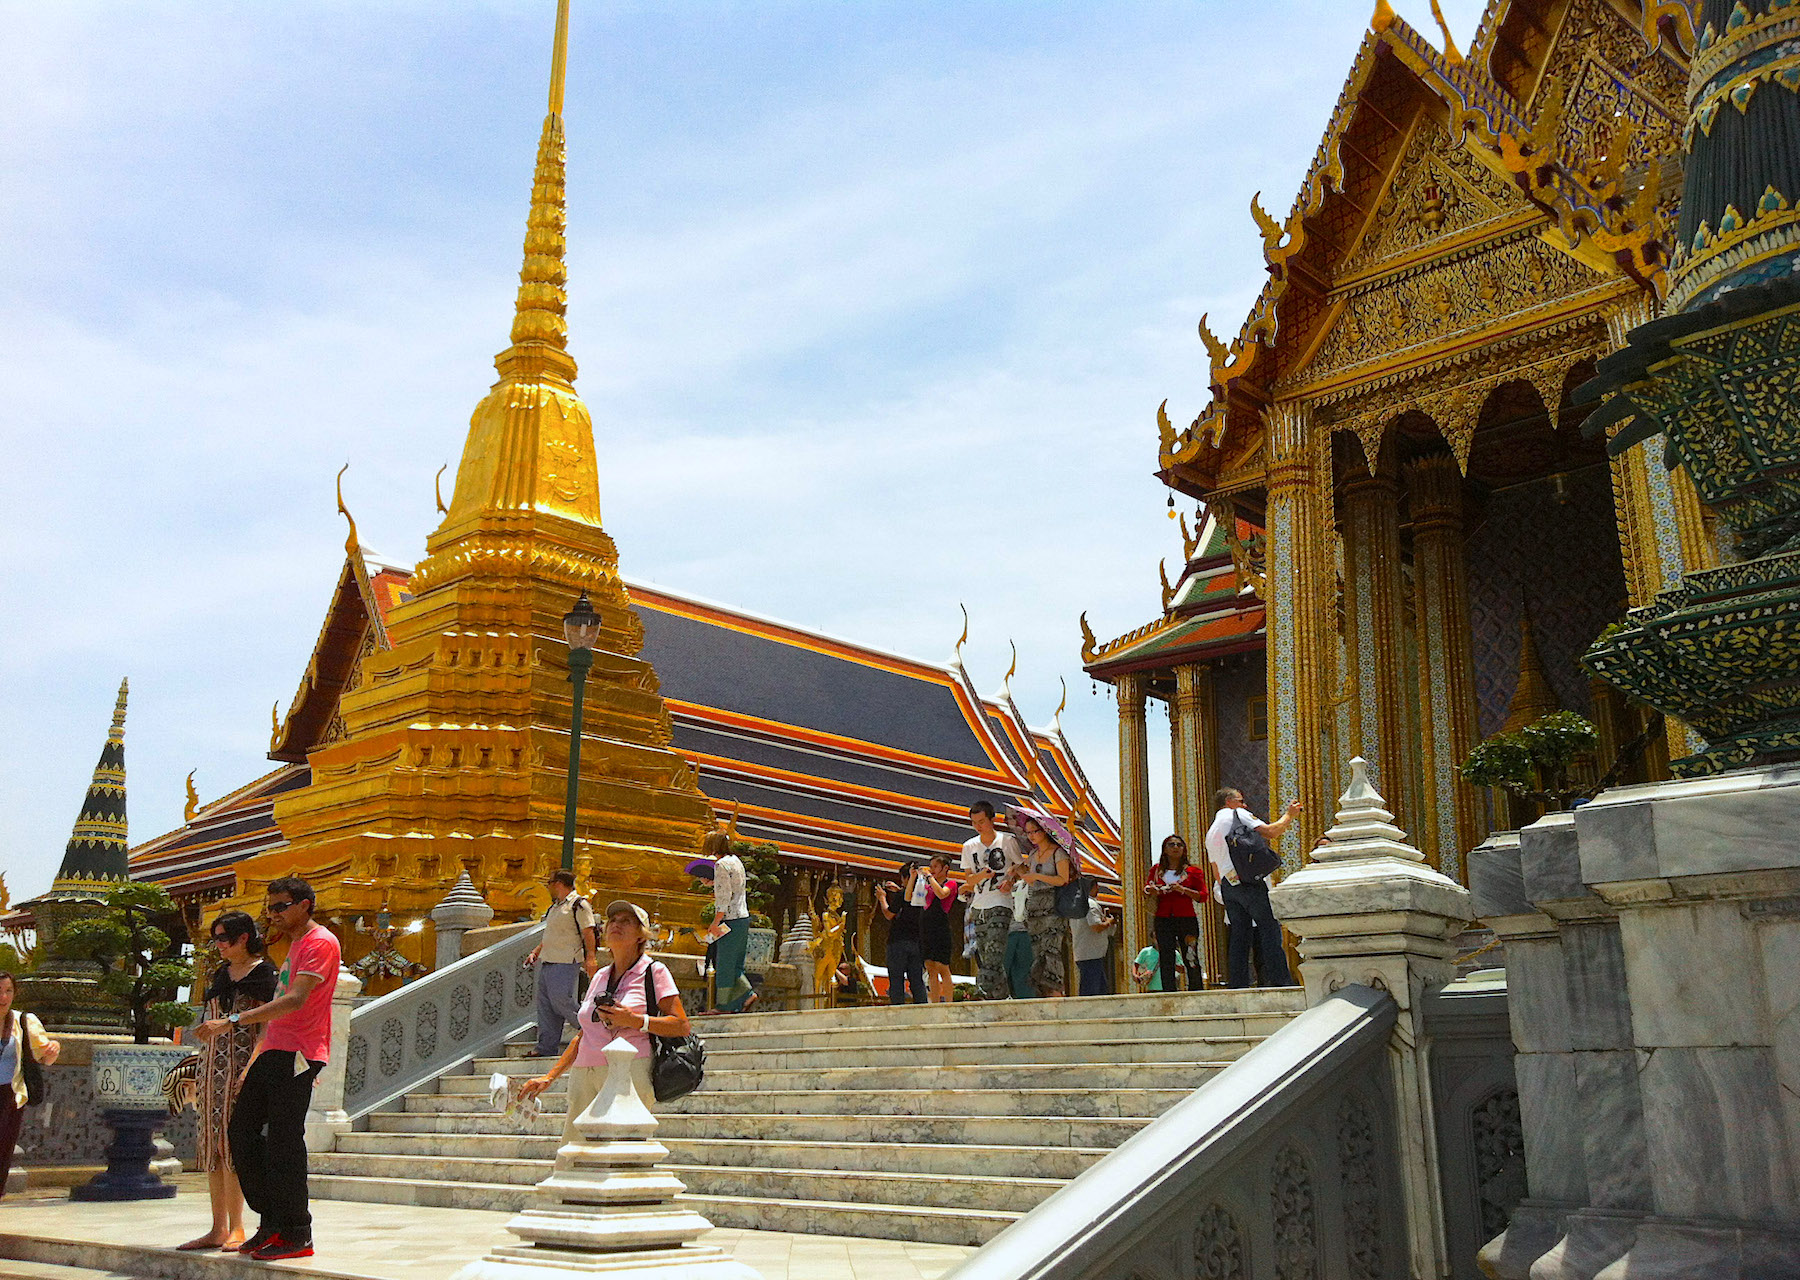 Wat Phra Kaew (Temple of Emerald Buddha) in Bangkok